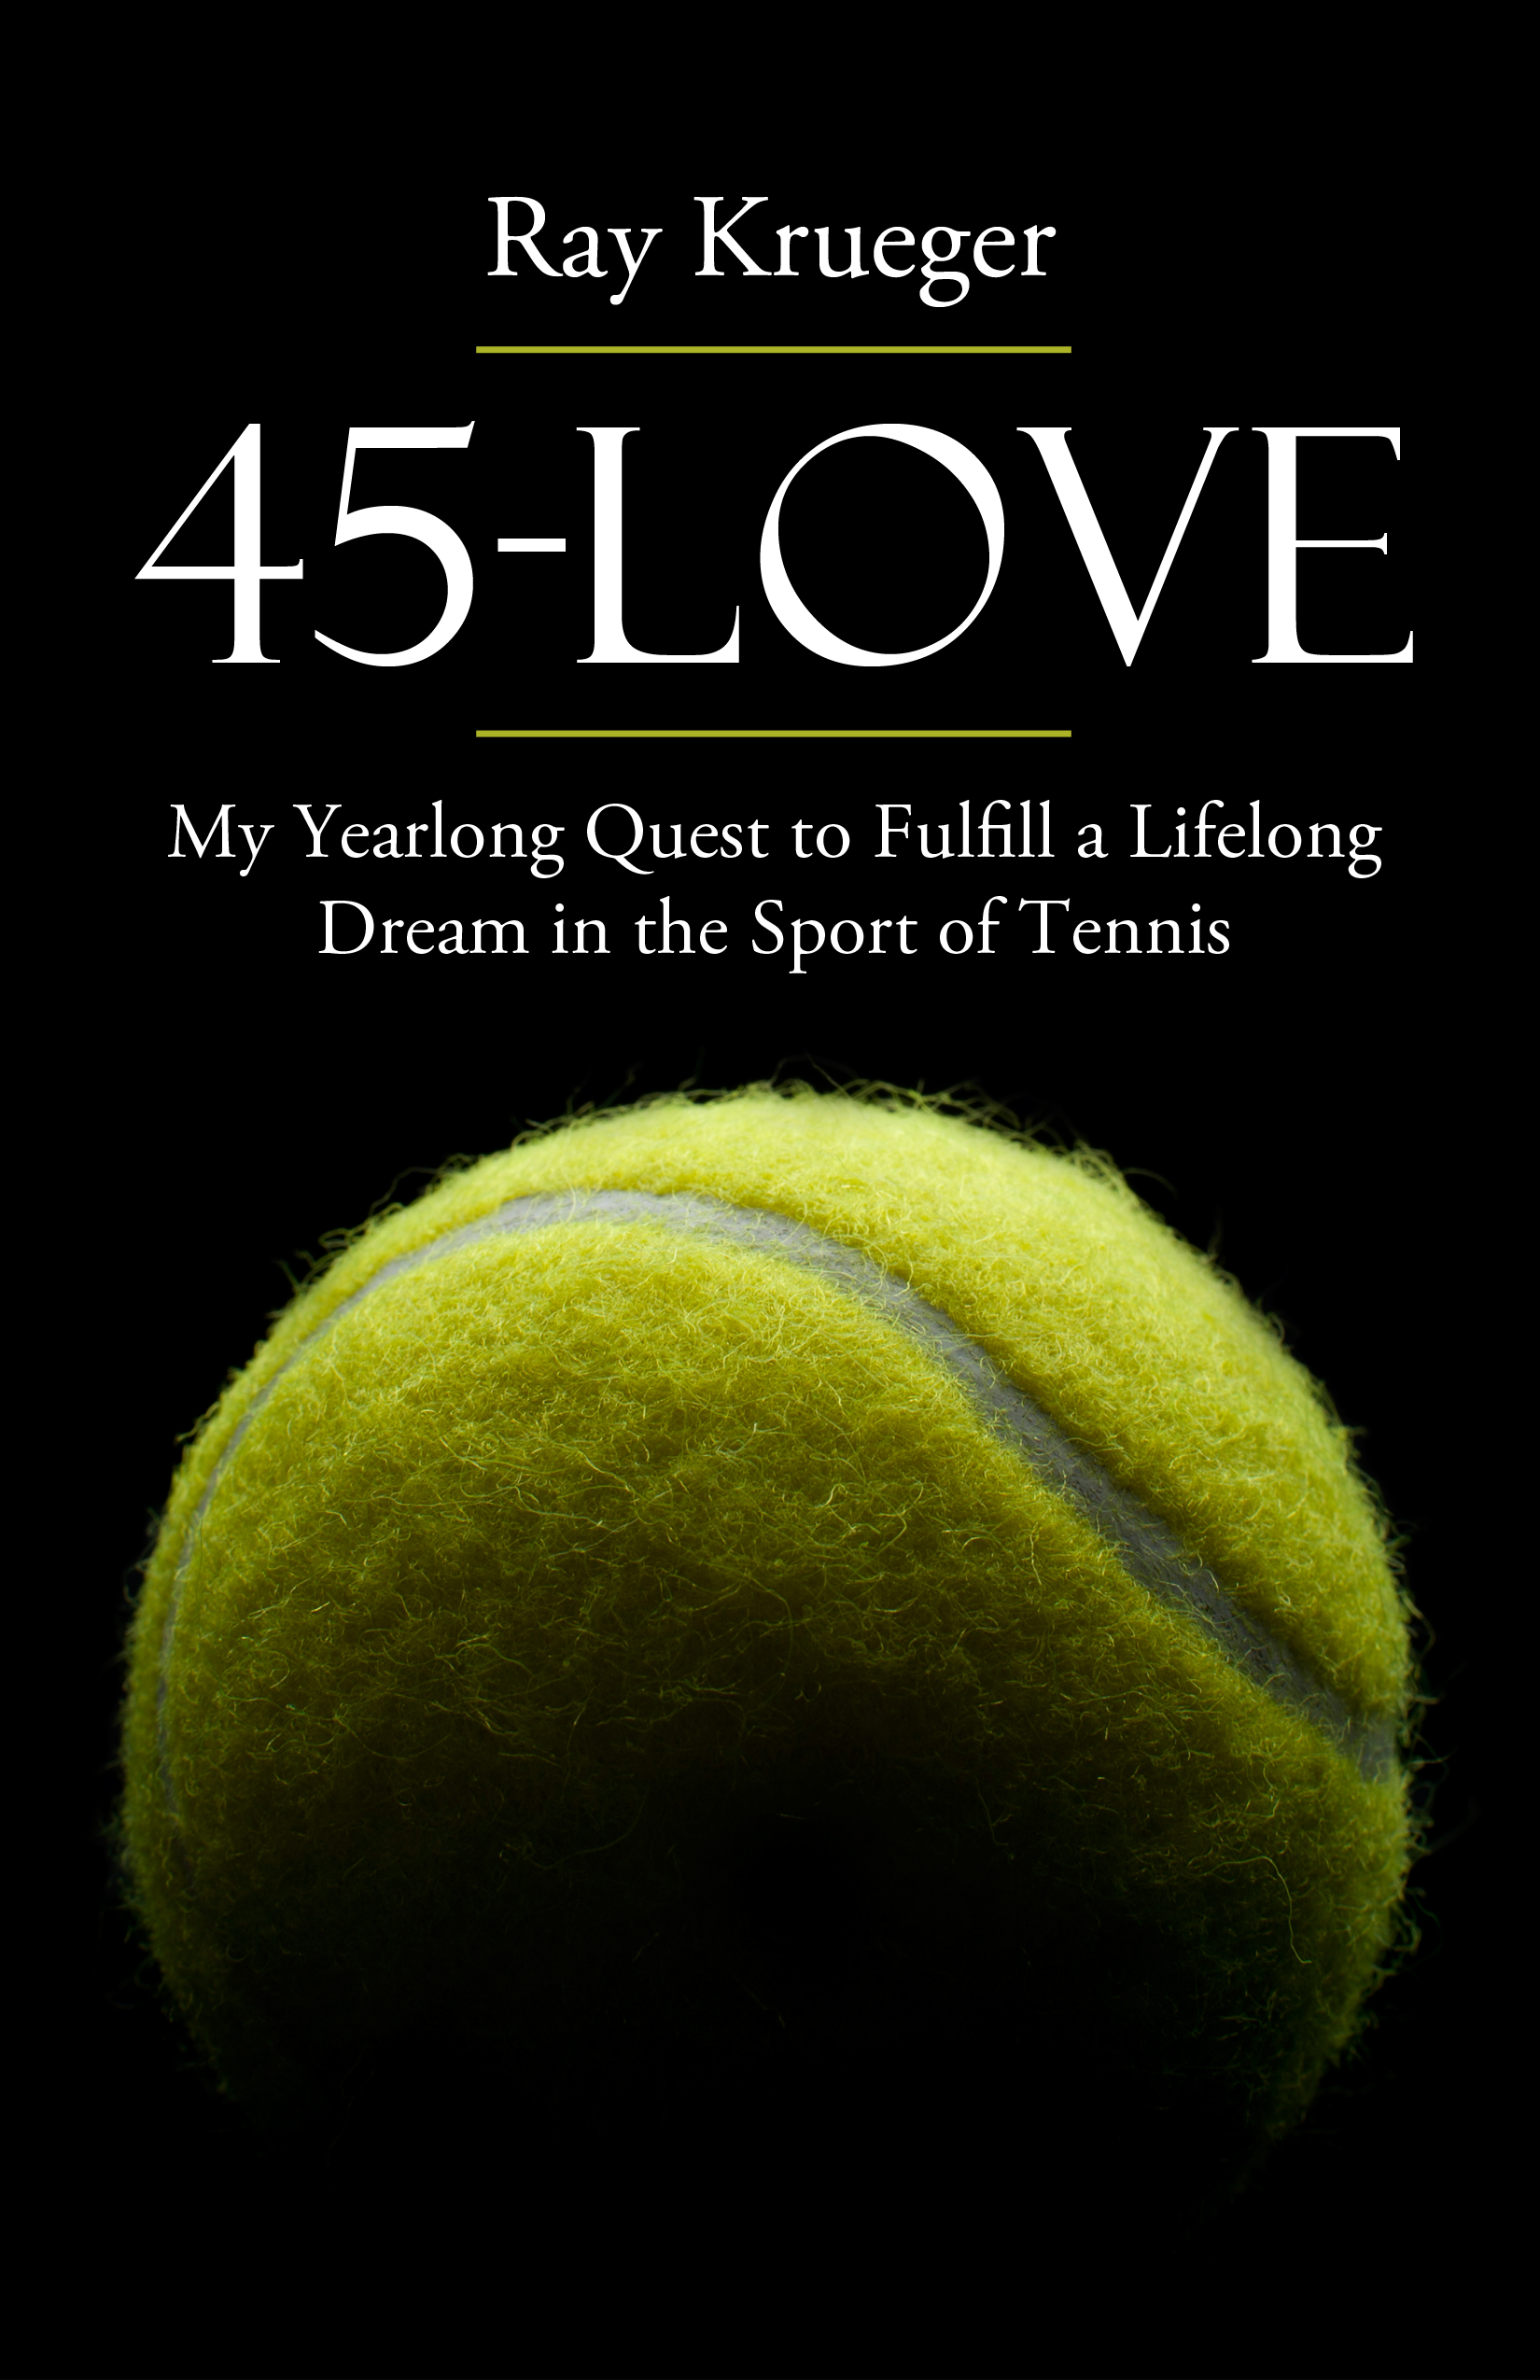 45-Love: My Yearlong Quest to Fulfill a Lifelong Dream in the Sport of Tennis